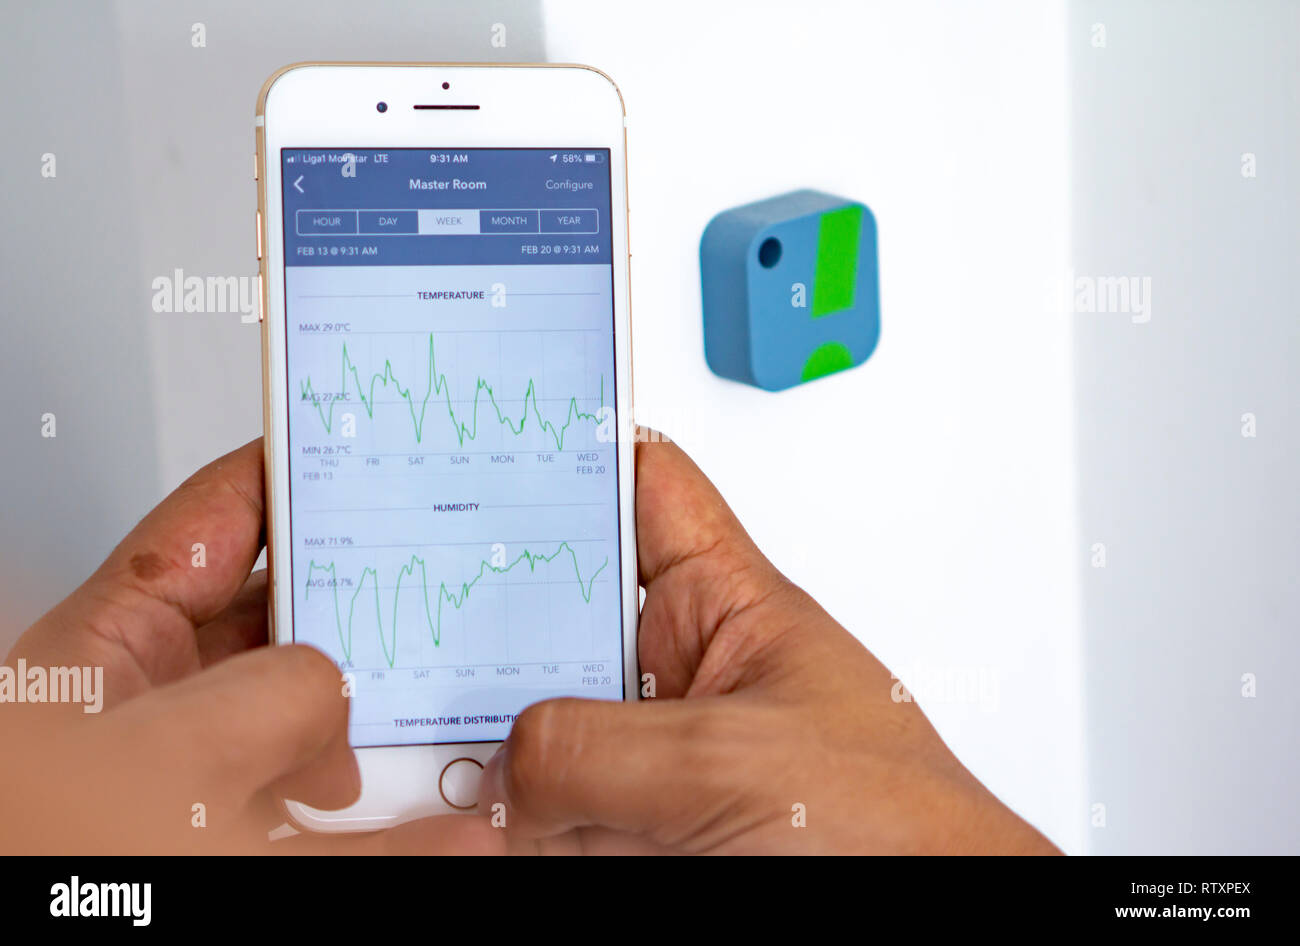 Man monitoring home humidity levels with app - Stock Image